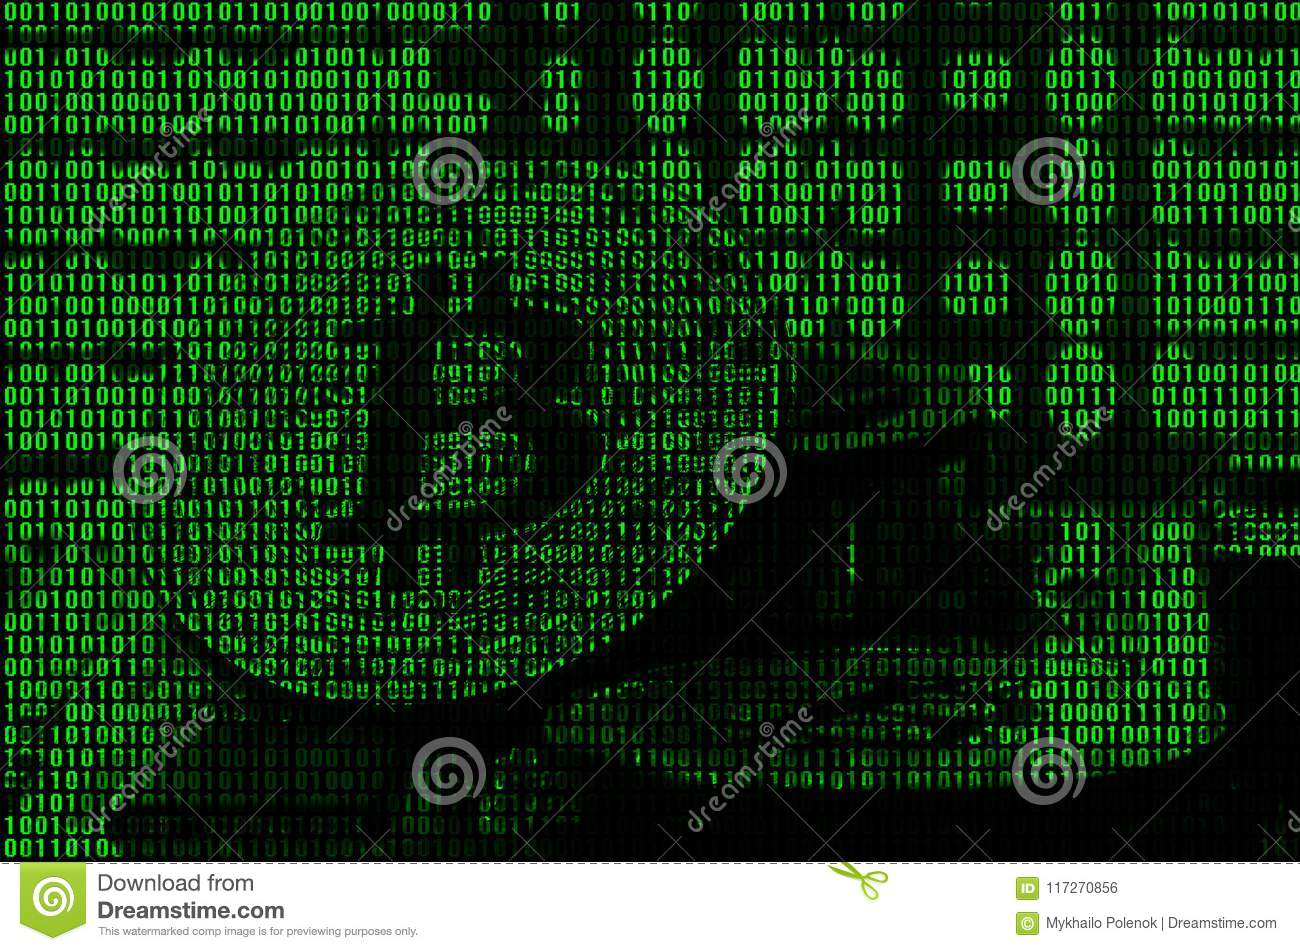 Image Of The Binary Code From Bright Green Digits Through Which The